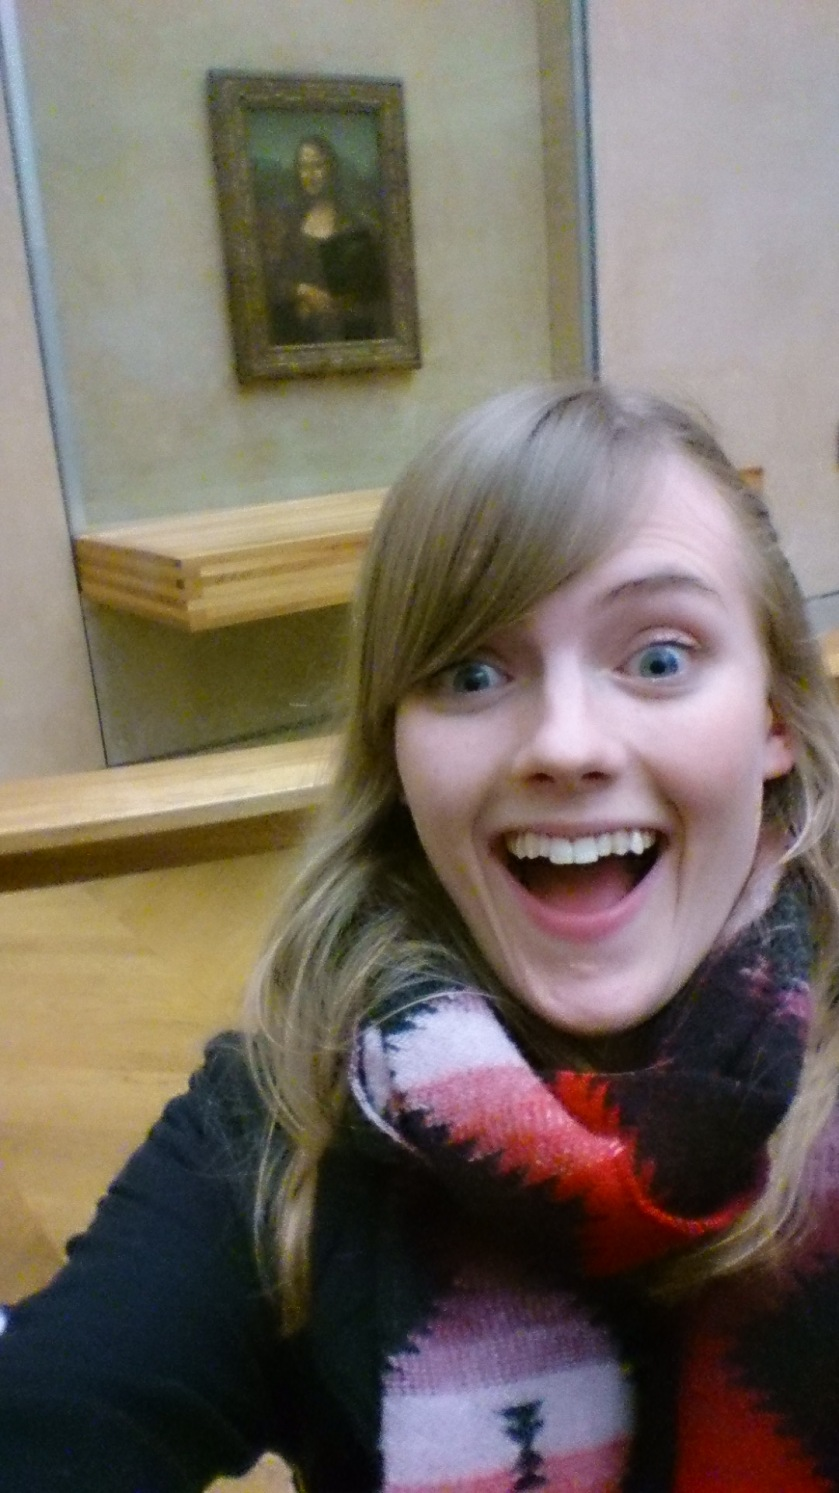 Selfie and the Mona Lisa - I couldn't resist!